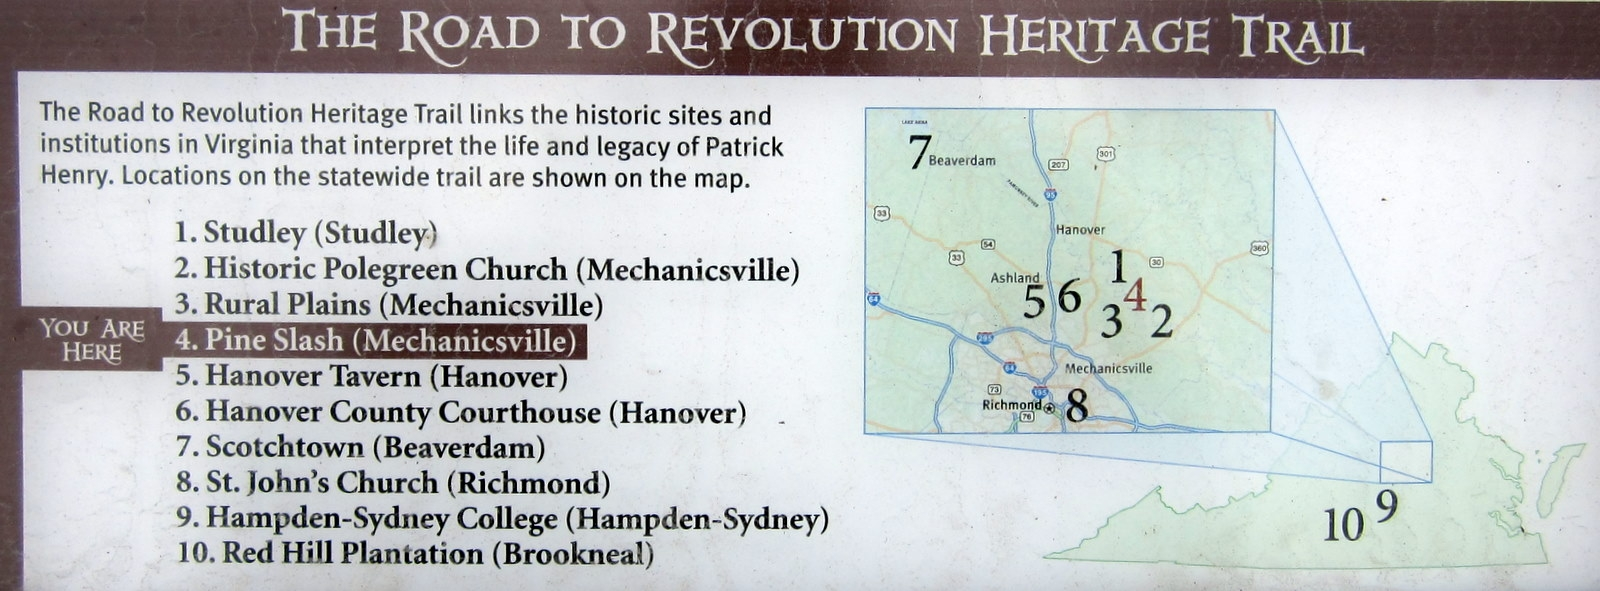 The Road to Revolution Heritage Trail